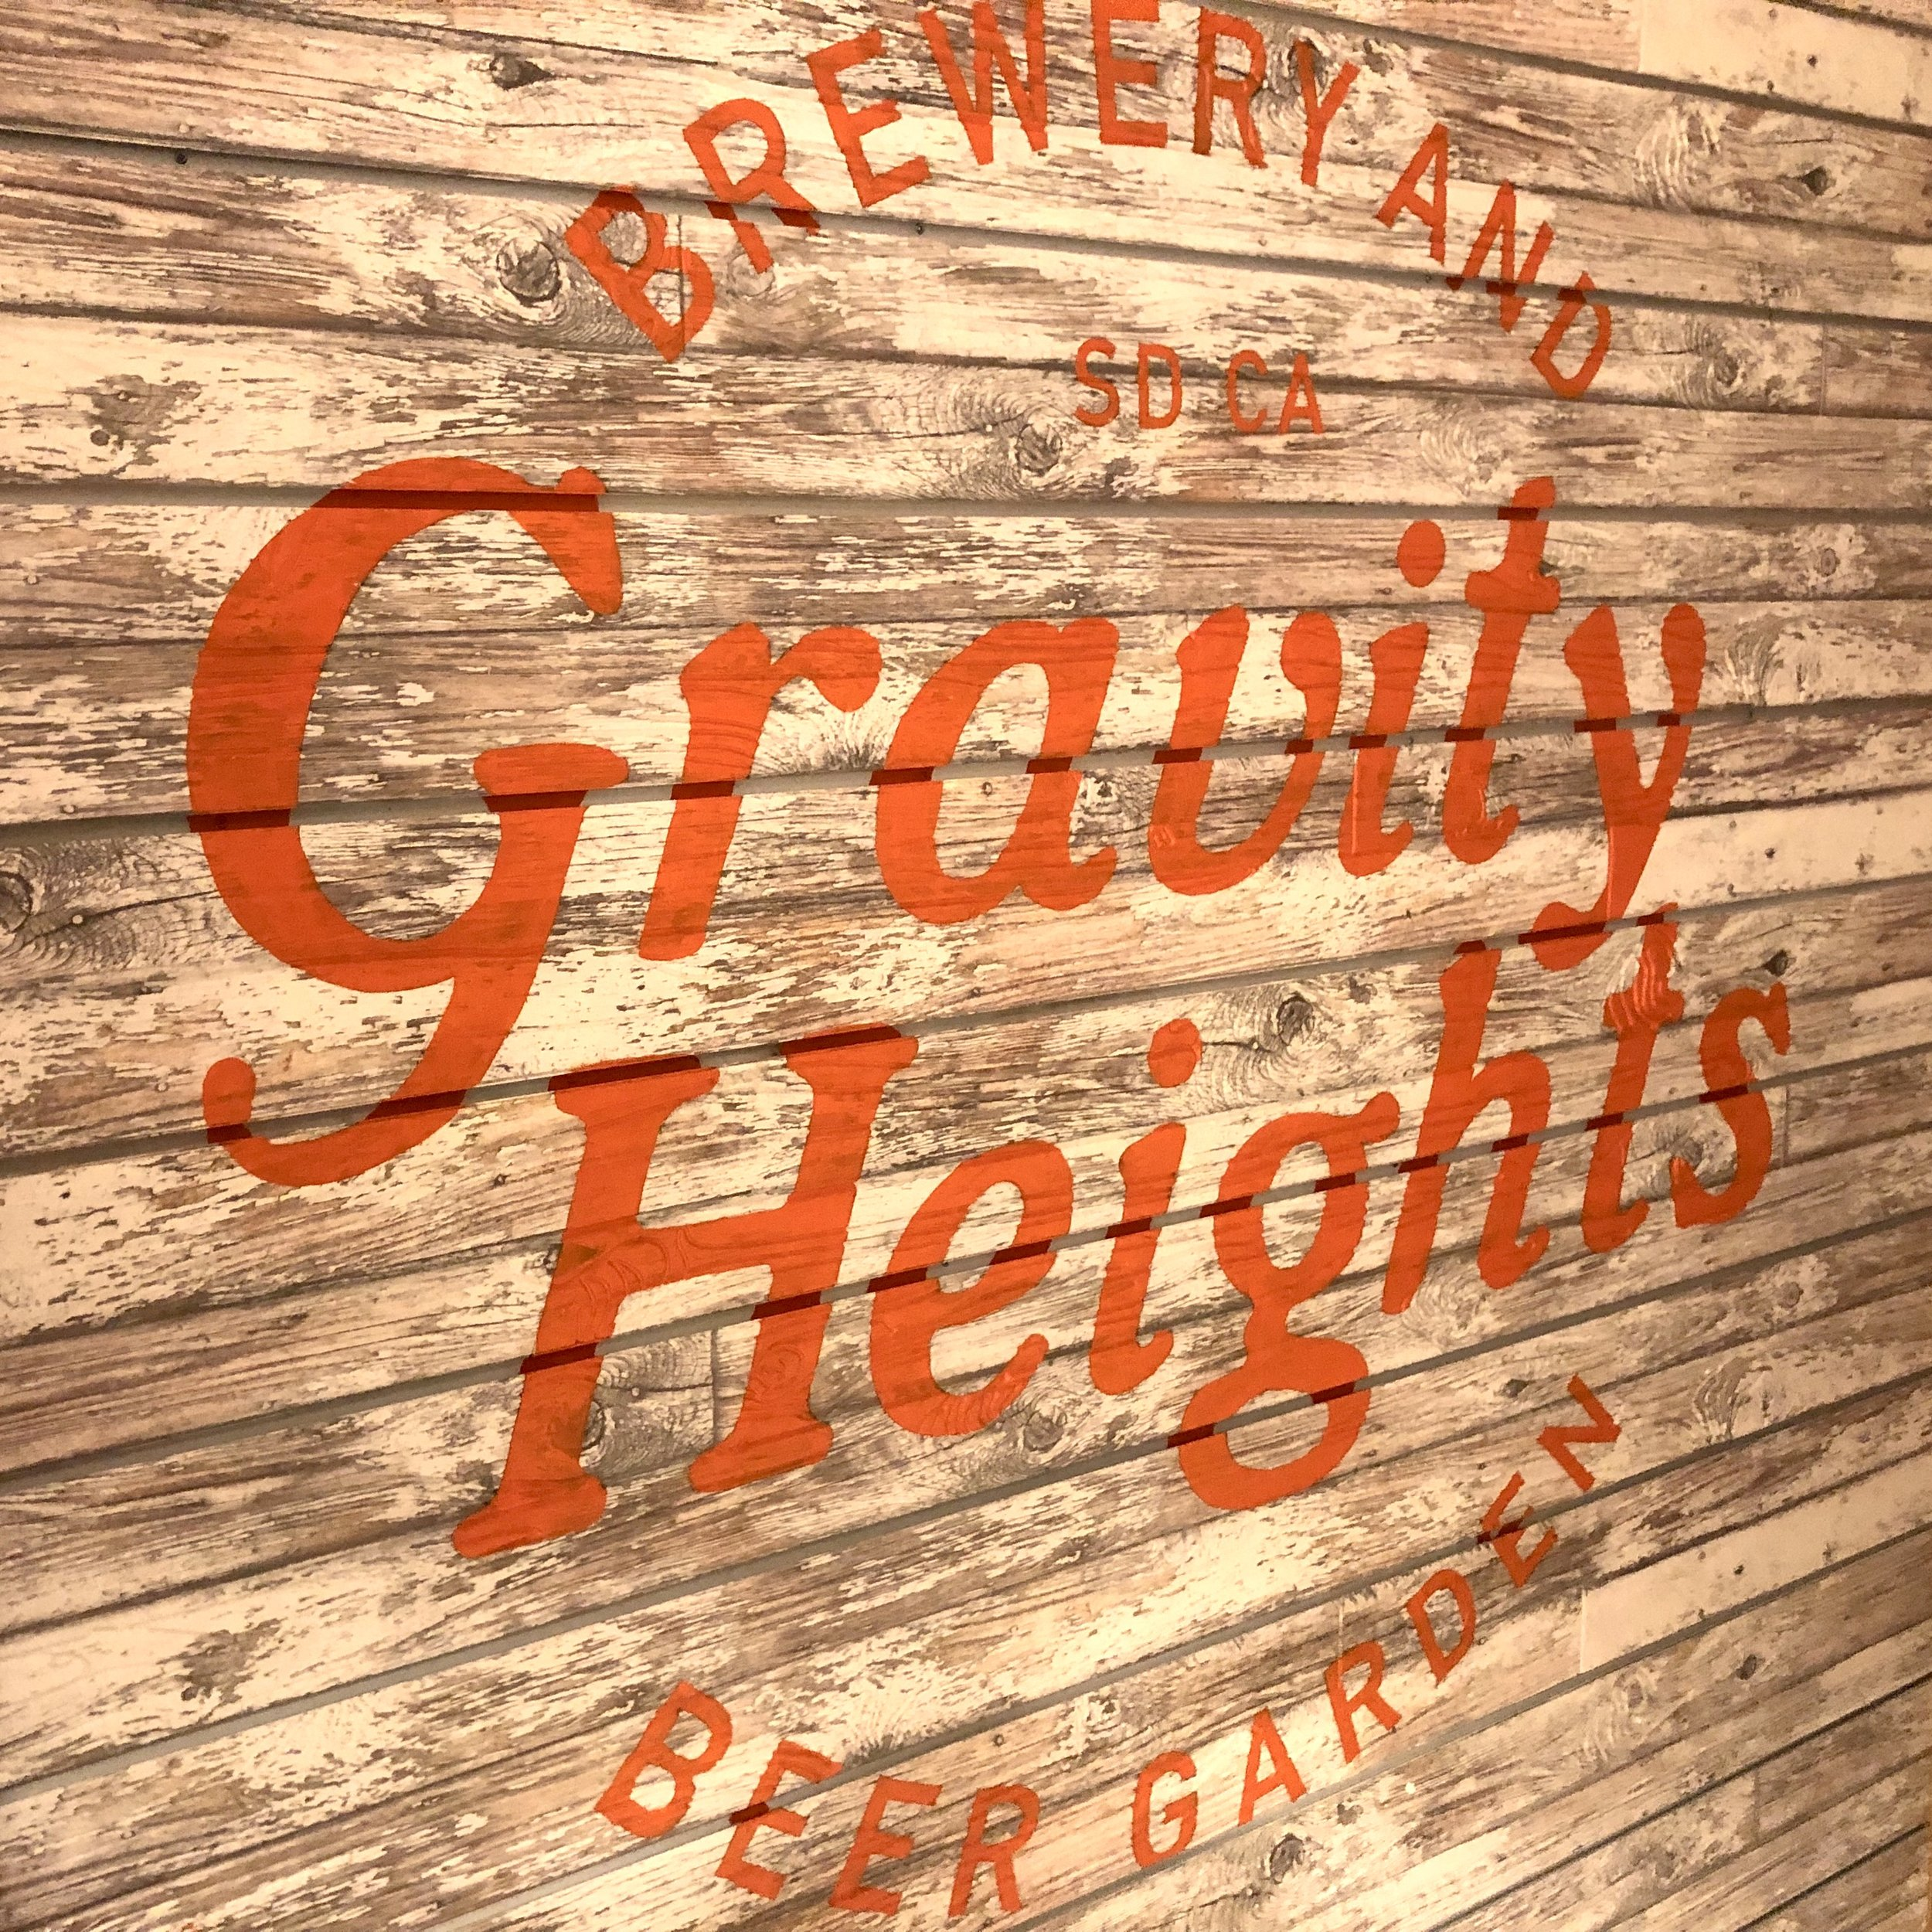 Gravity Heights Brewery San Diego hand painted brand logo